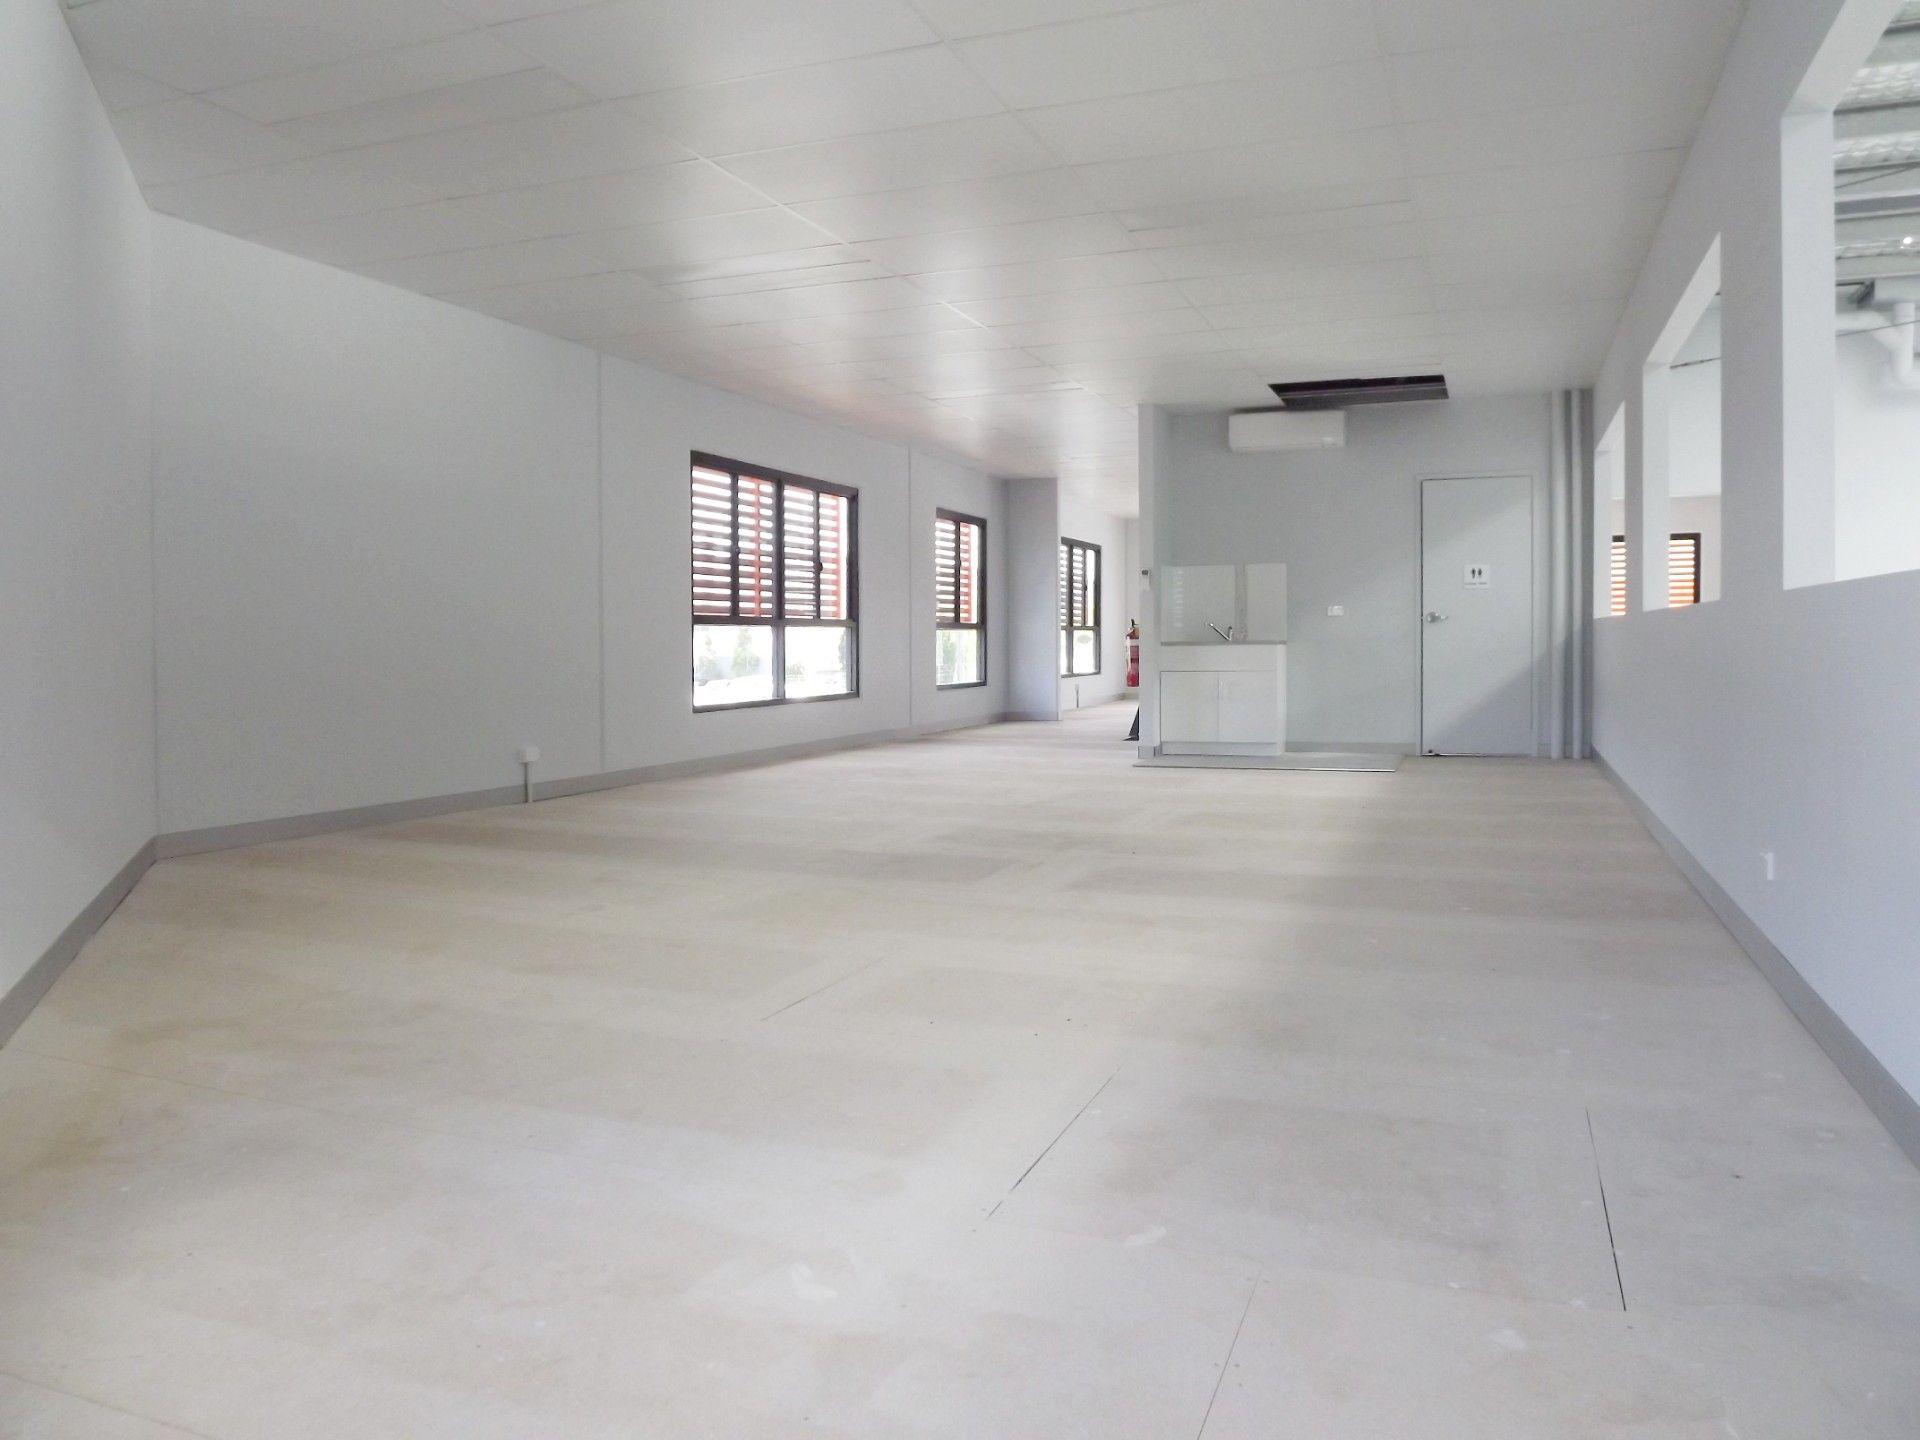 500M²* BRAND NEW TILT PANEL OFFICE/WAREHOUSE